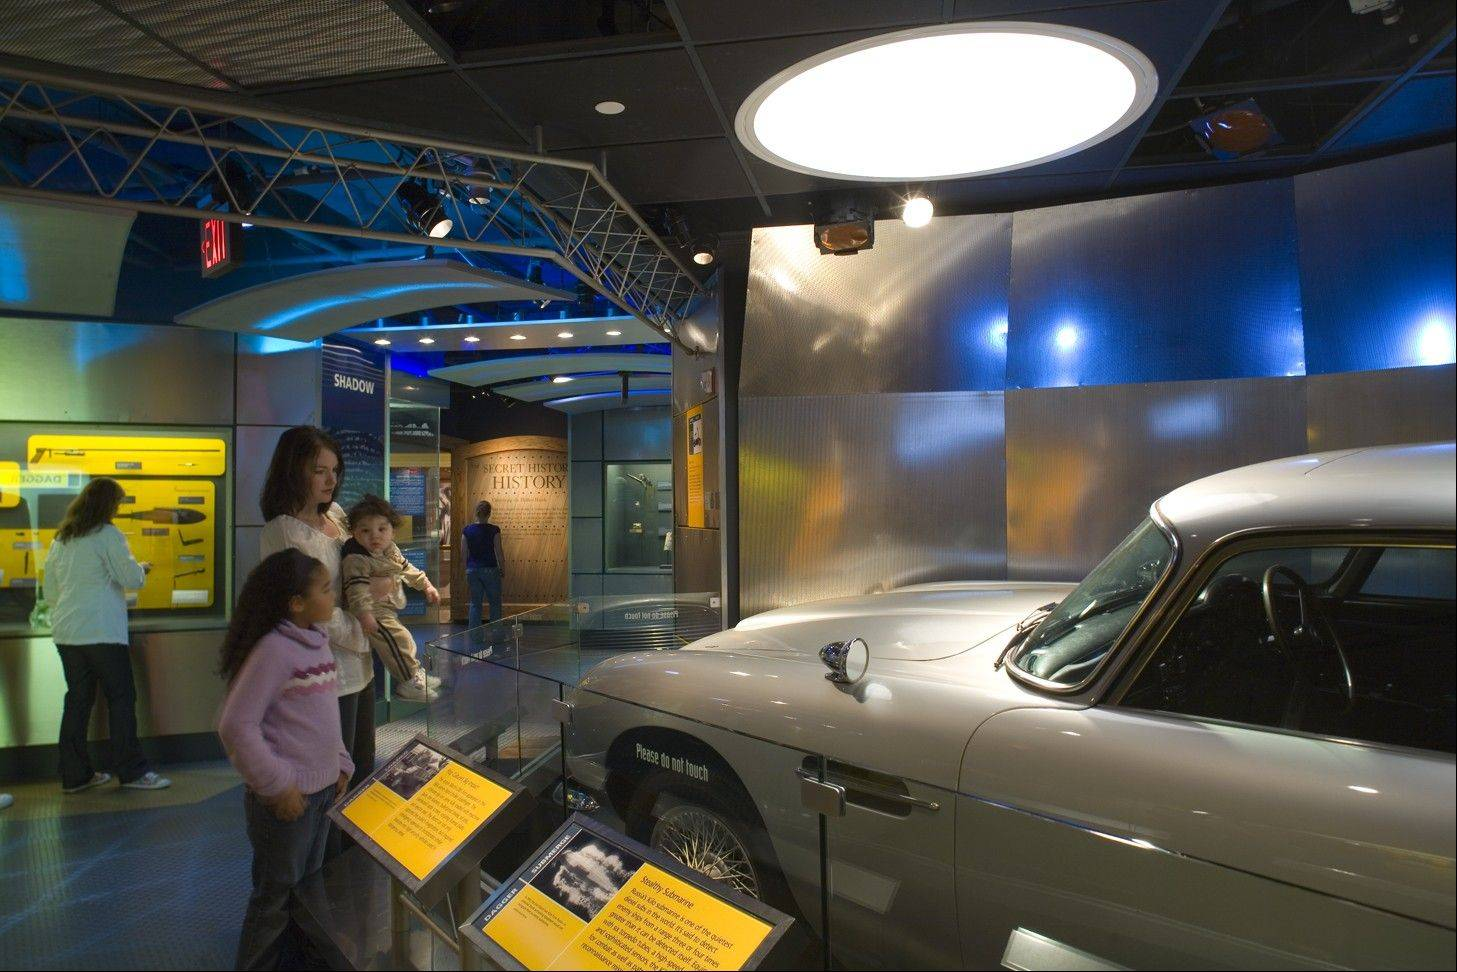 School For Spies Gallery shows the Bond car at the International Spy Museum in Washington, D.C.